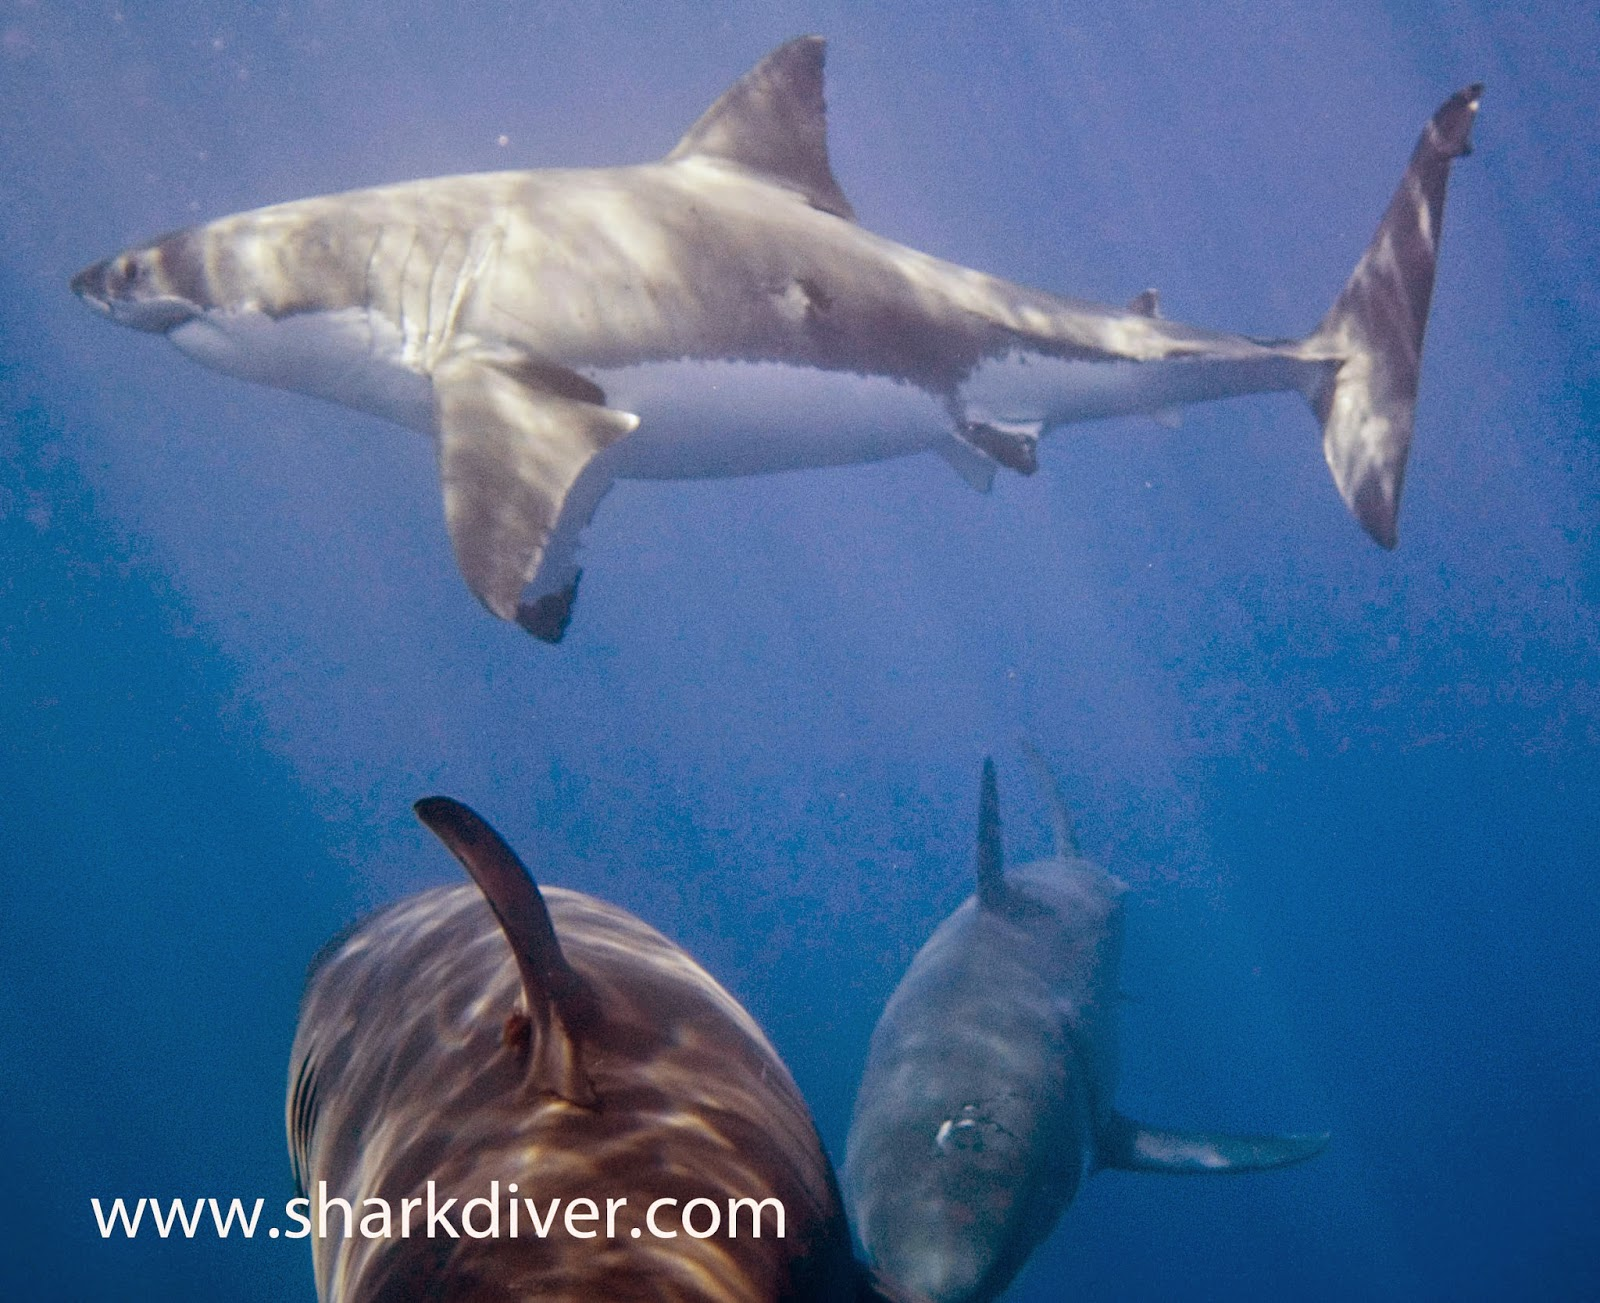 What's the difference between a Great White and a Tiger Shark?